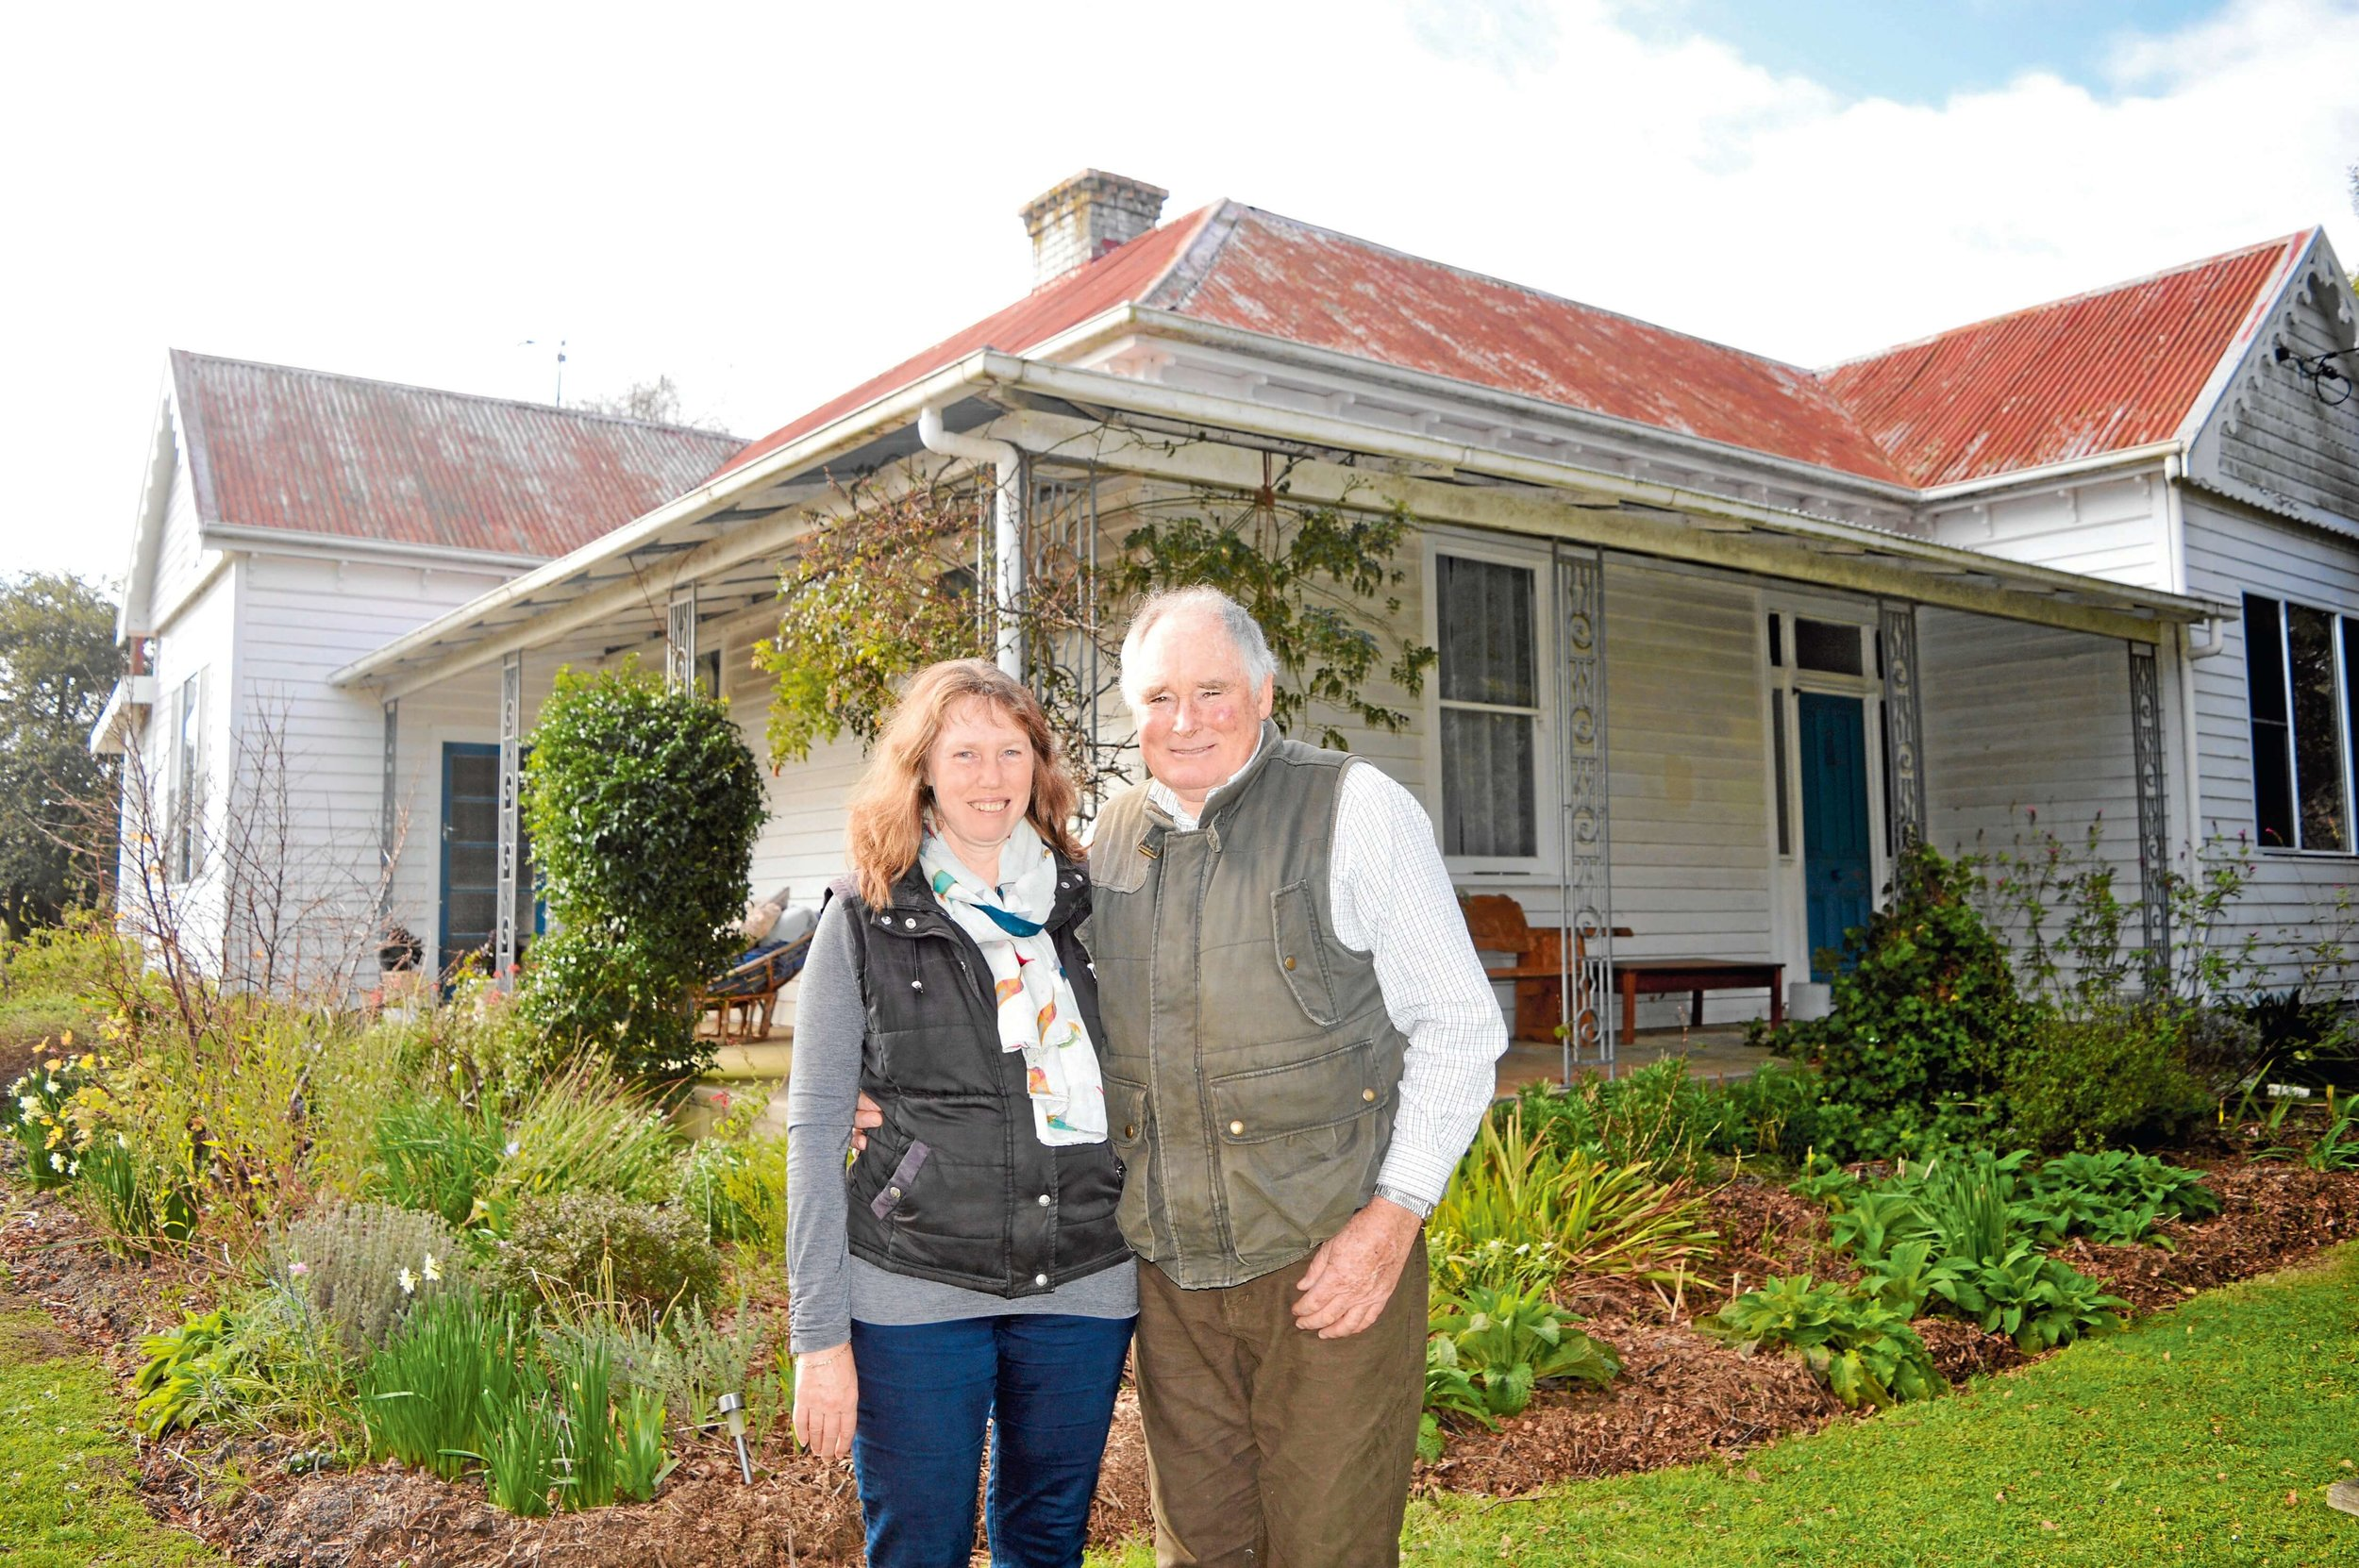 • Belinda Somerville-Hall and Robert Hall at Fairbank, which was formerly the Springfield hospital.